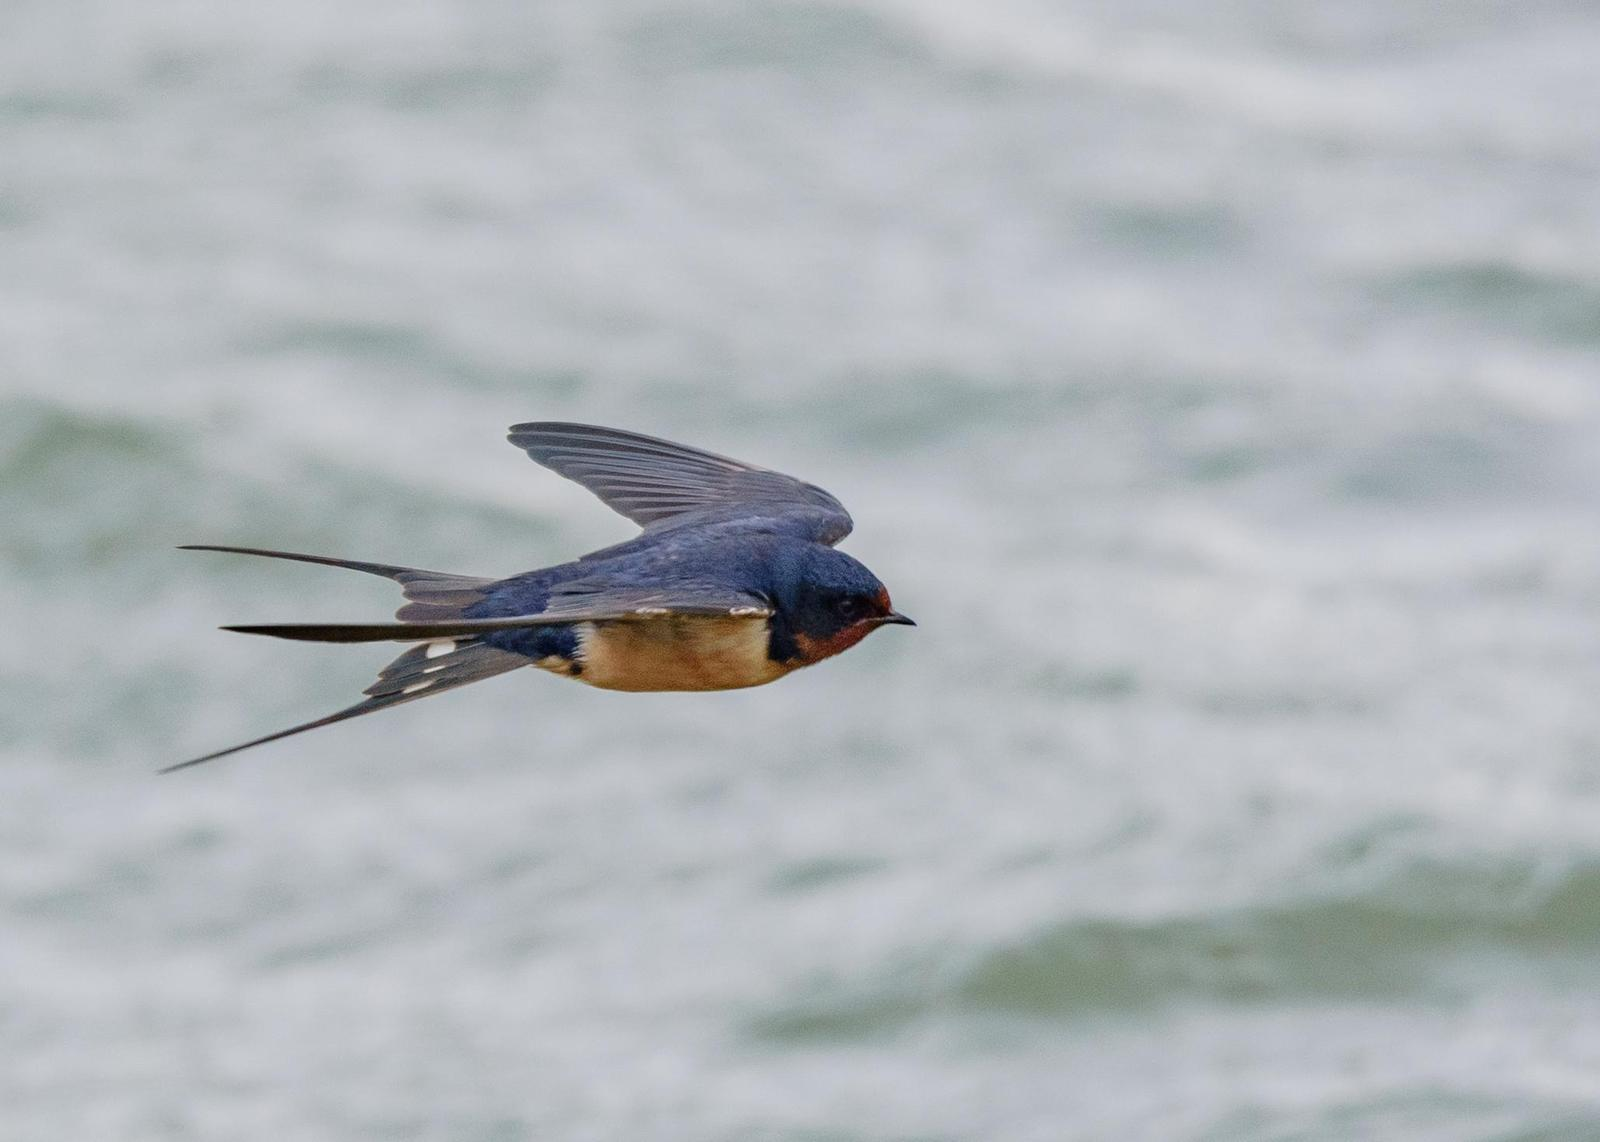 Barn Swallow Photo by Keshava Mysore